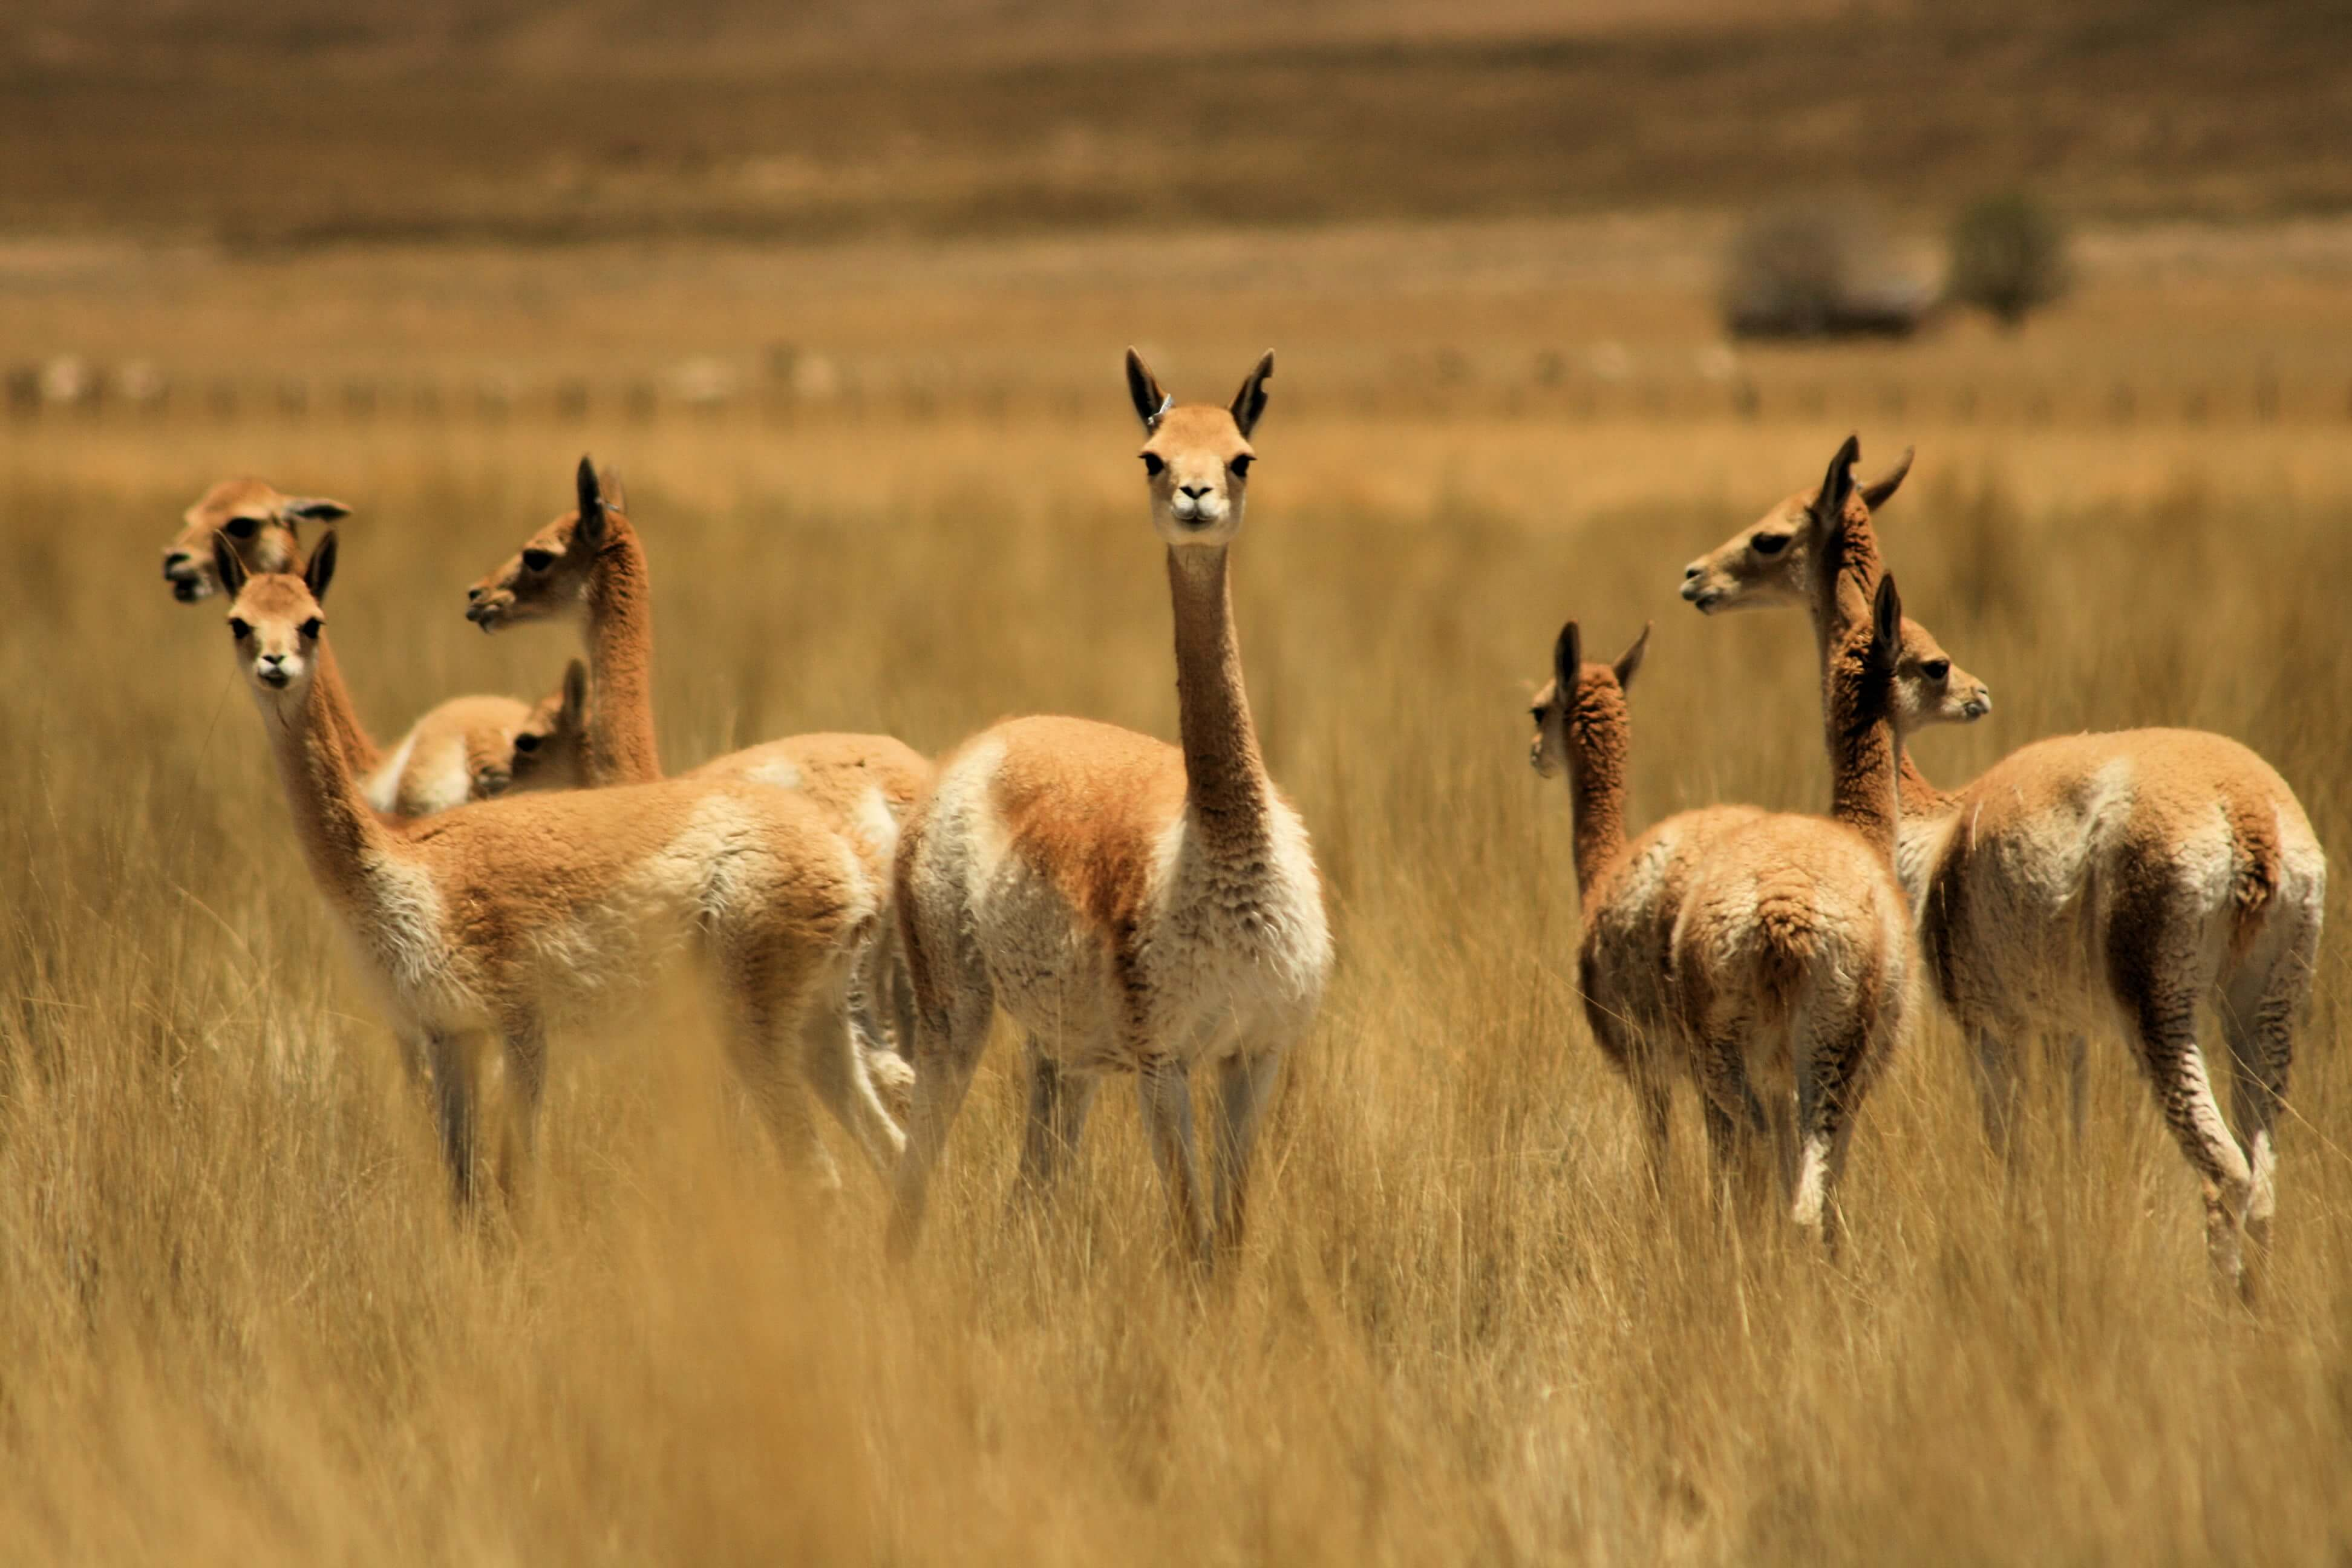 Finest fabric in the world; Vicunas